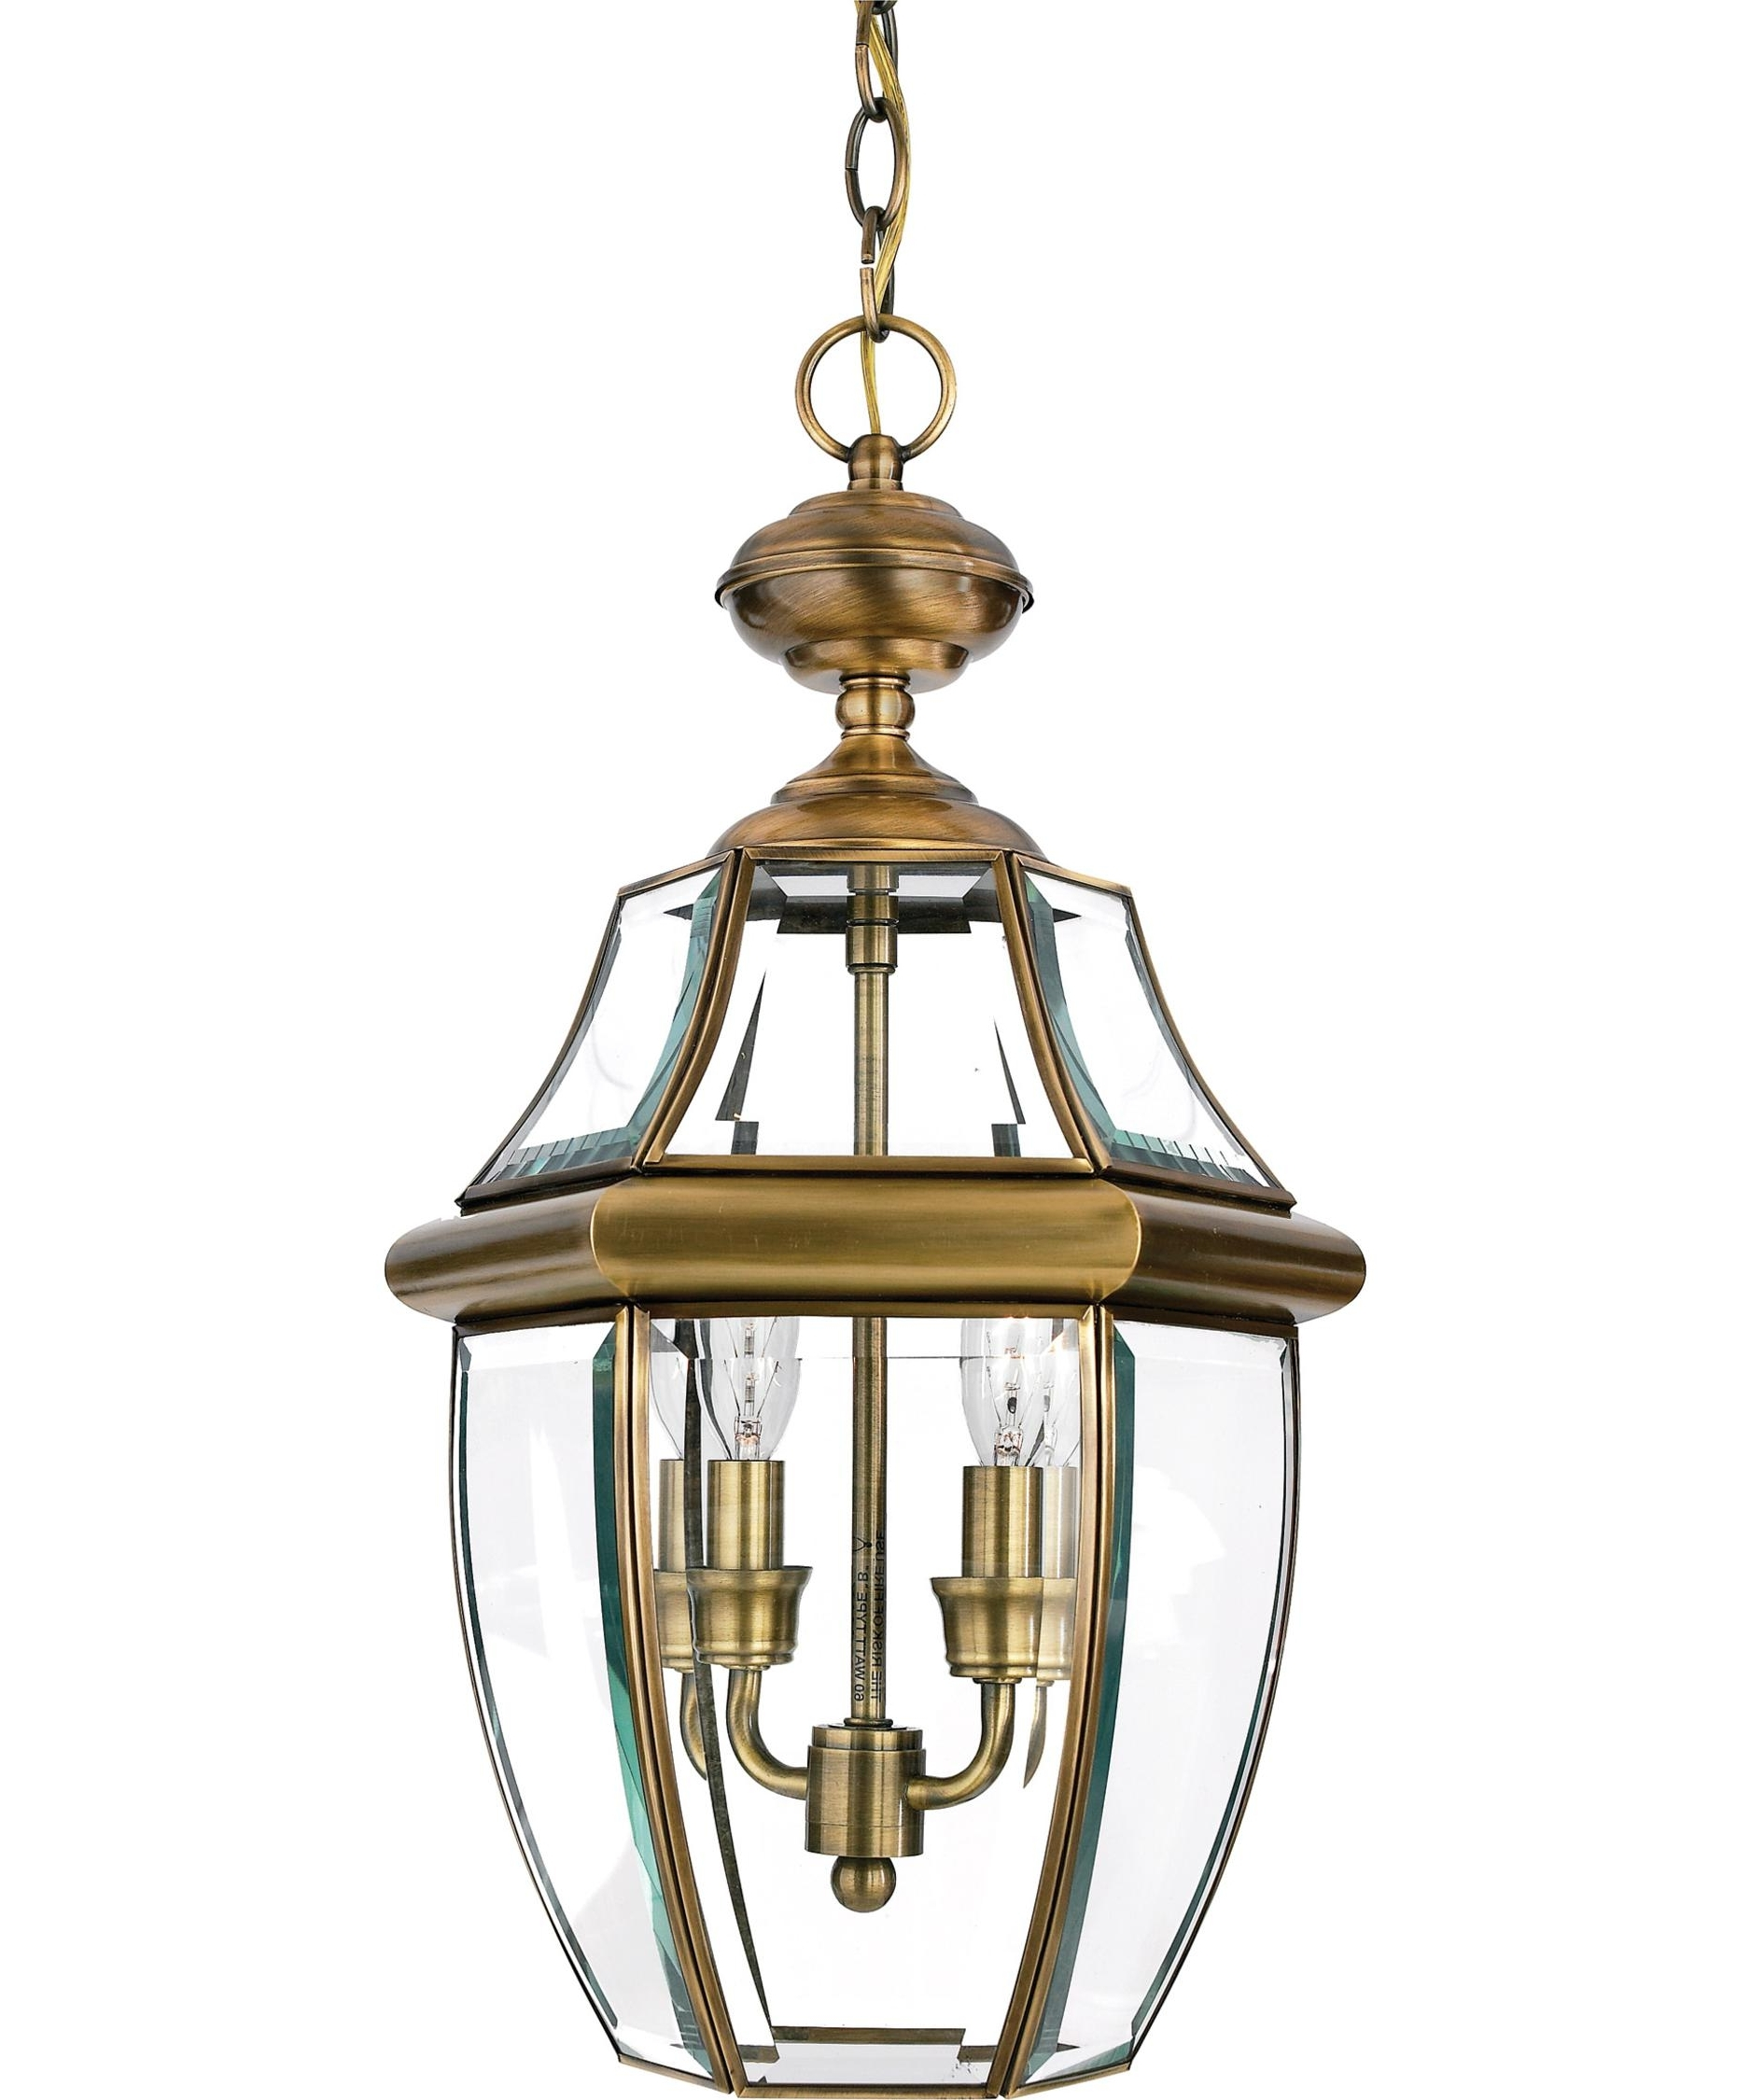 Gold Outdoor Lanterns Intended For Famous Quoizel Ny1178 Newbury 10 Inch Wide 2 Light Outdoor Hanging Lantern (View 7 of 20)